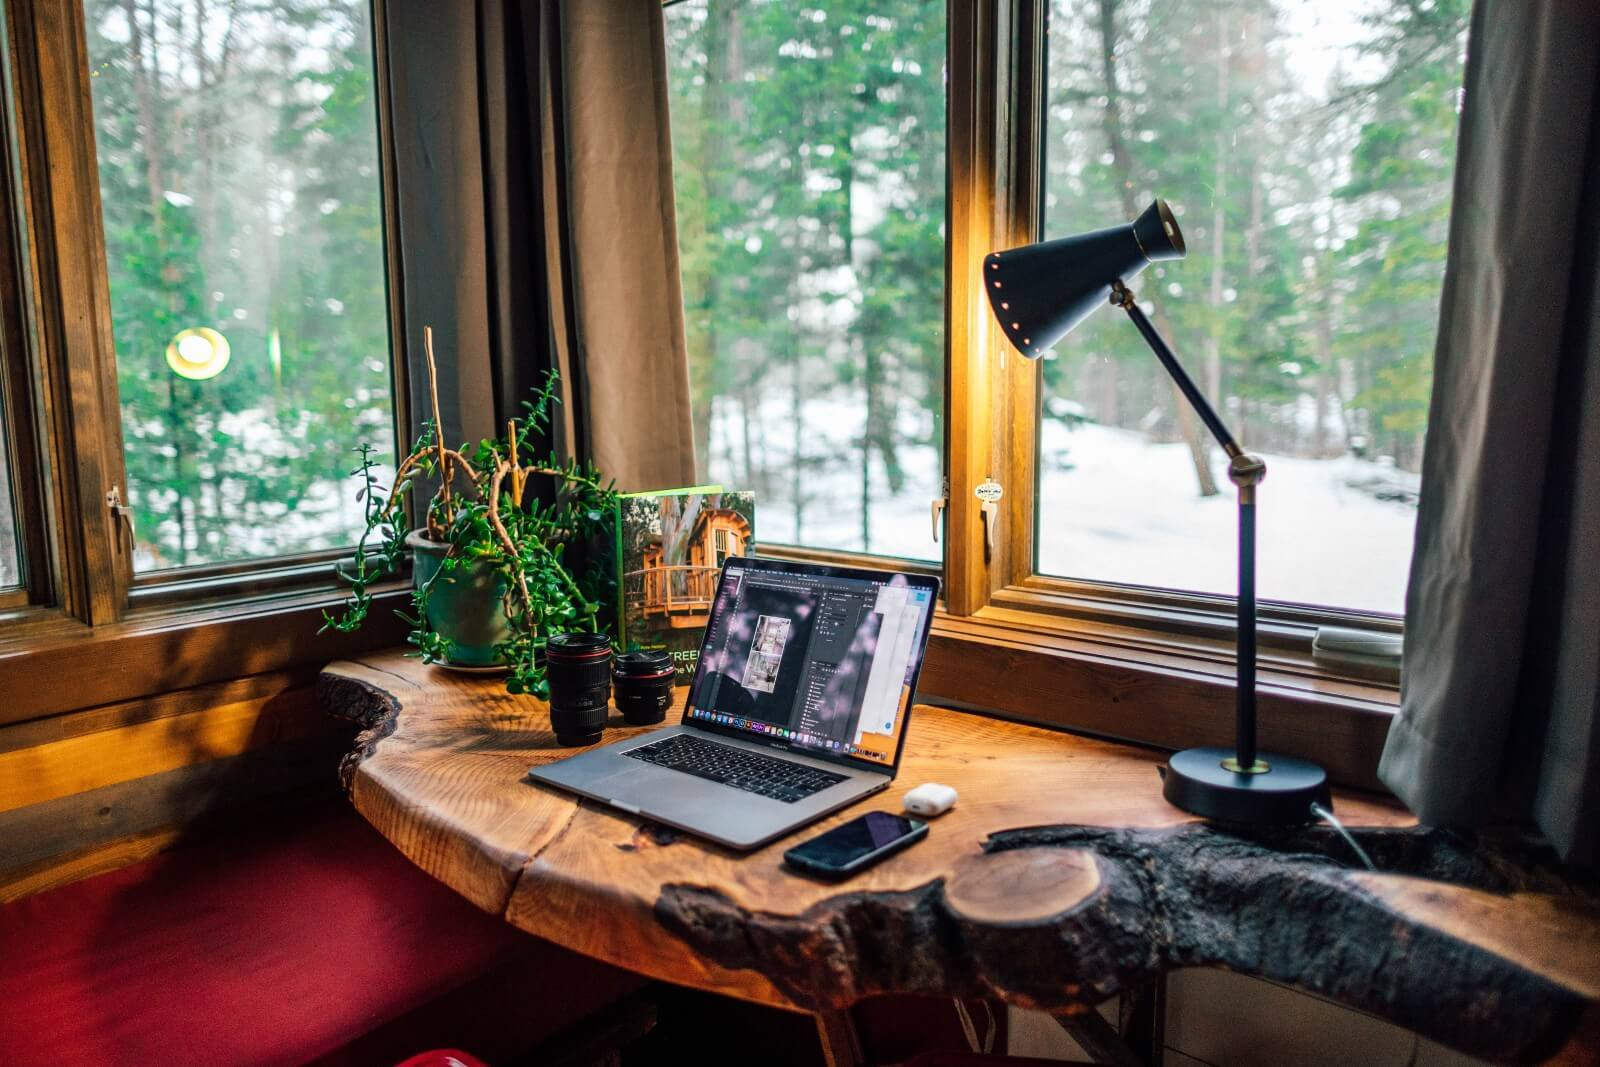 Remote Working Essentials: My Tips for Working Well From Home